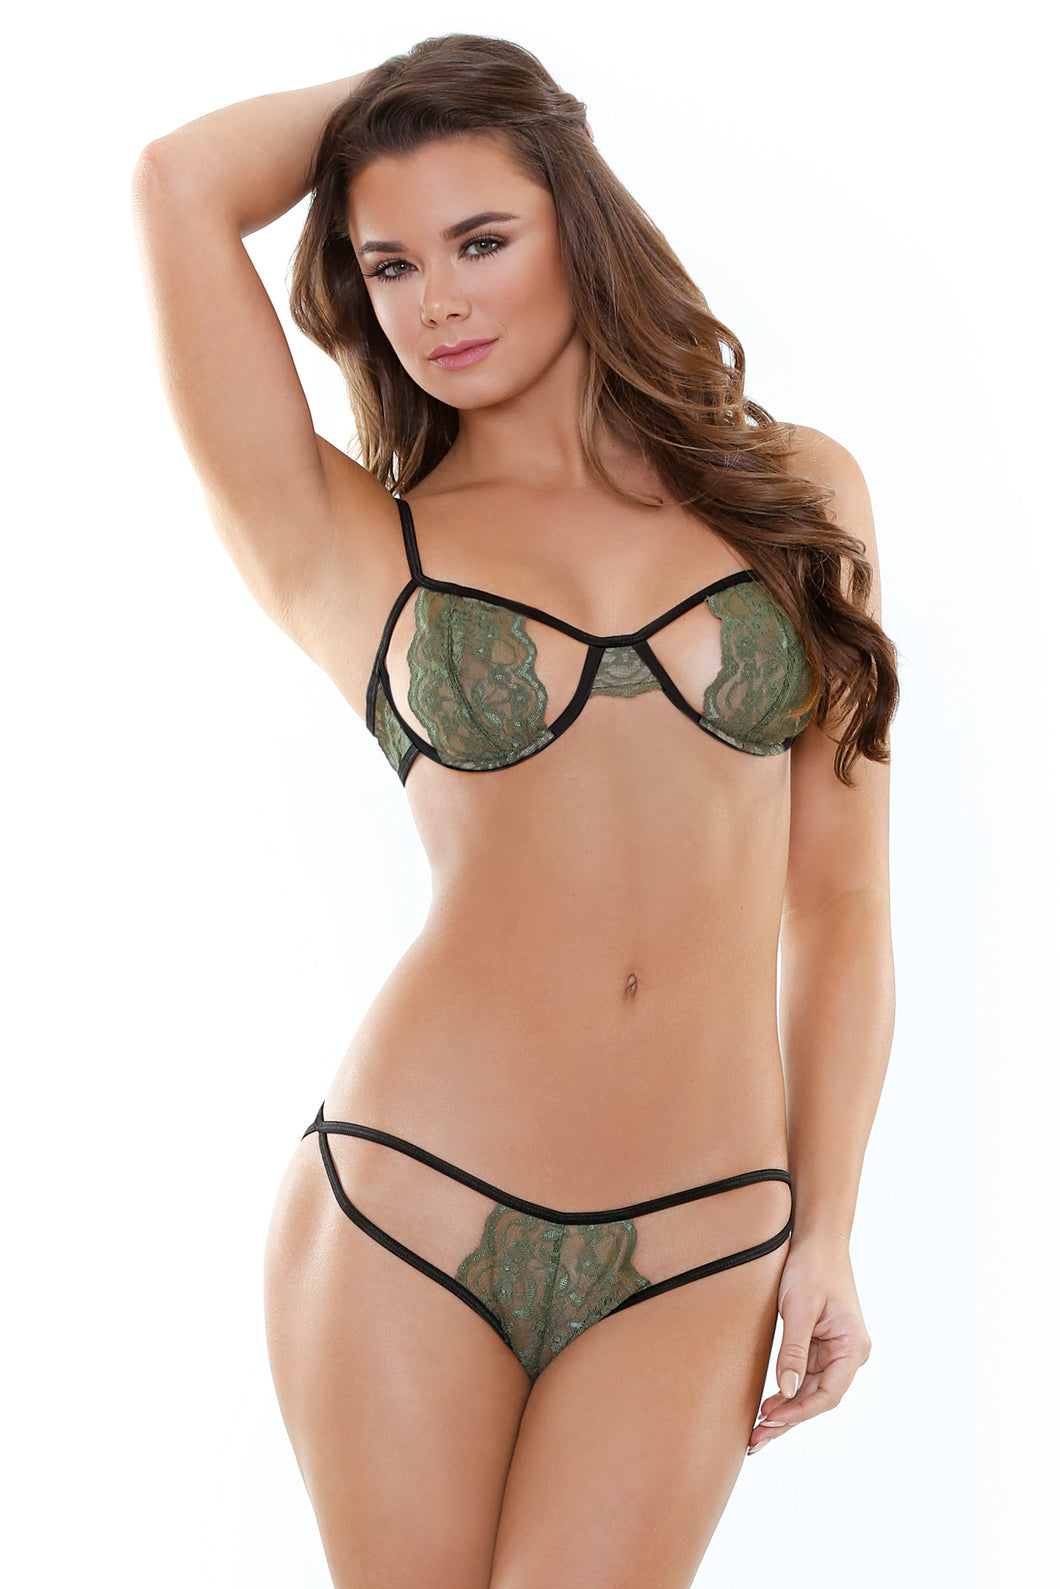 Olive Belle Stretch Lace Bra & Cutout Panty Set